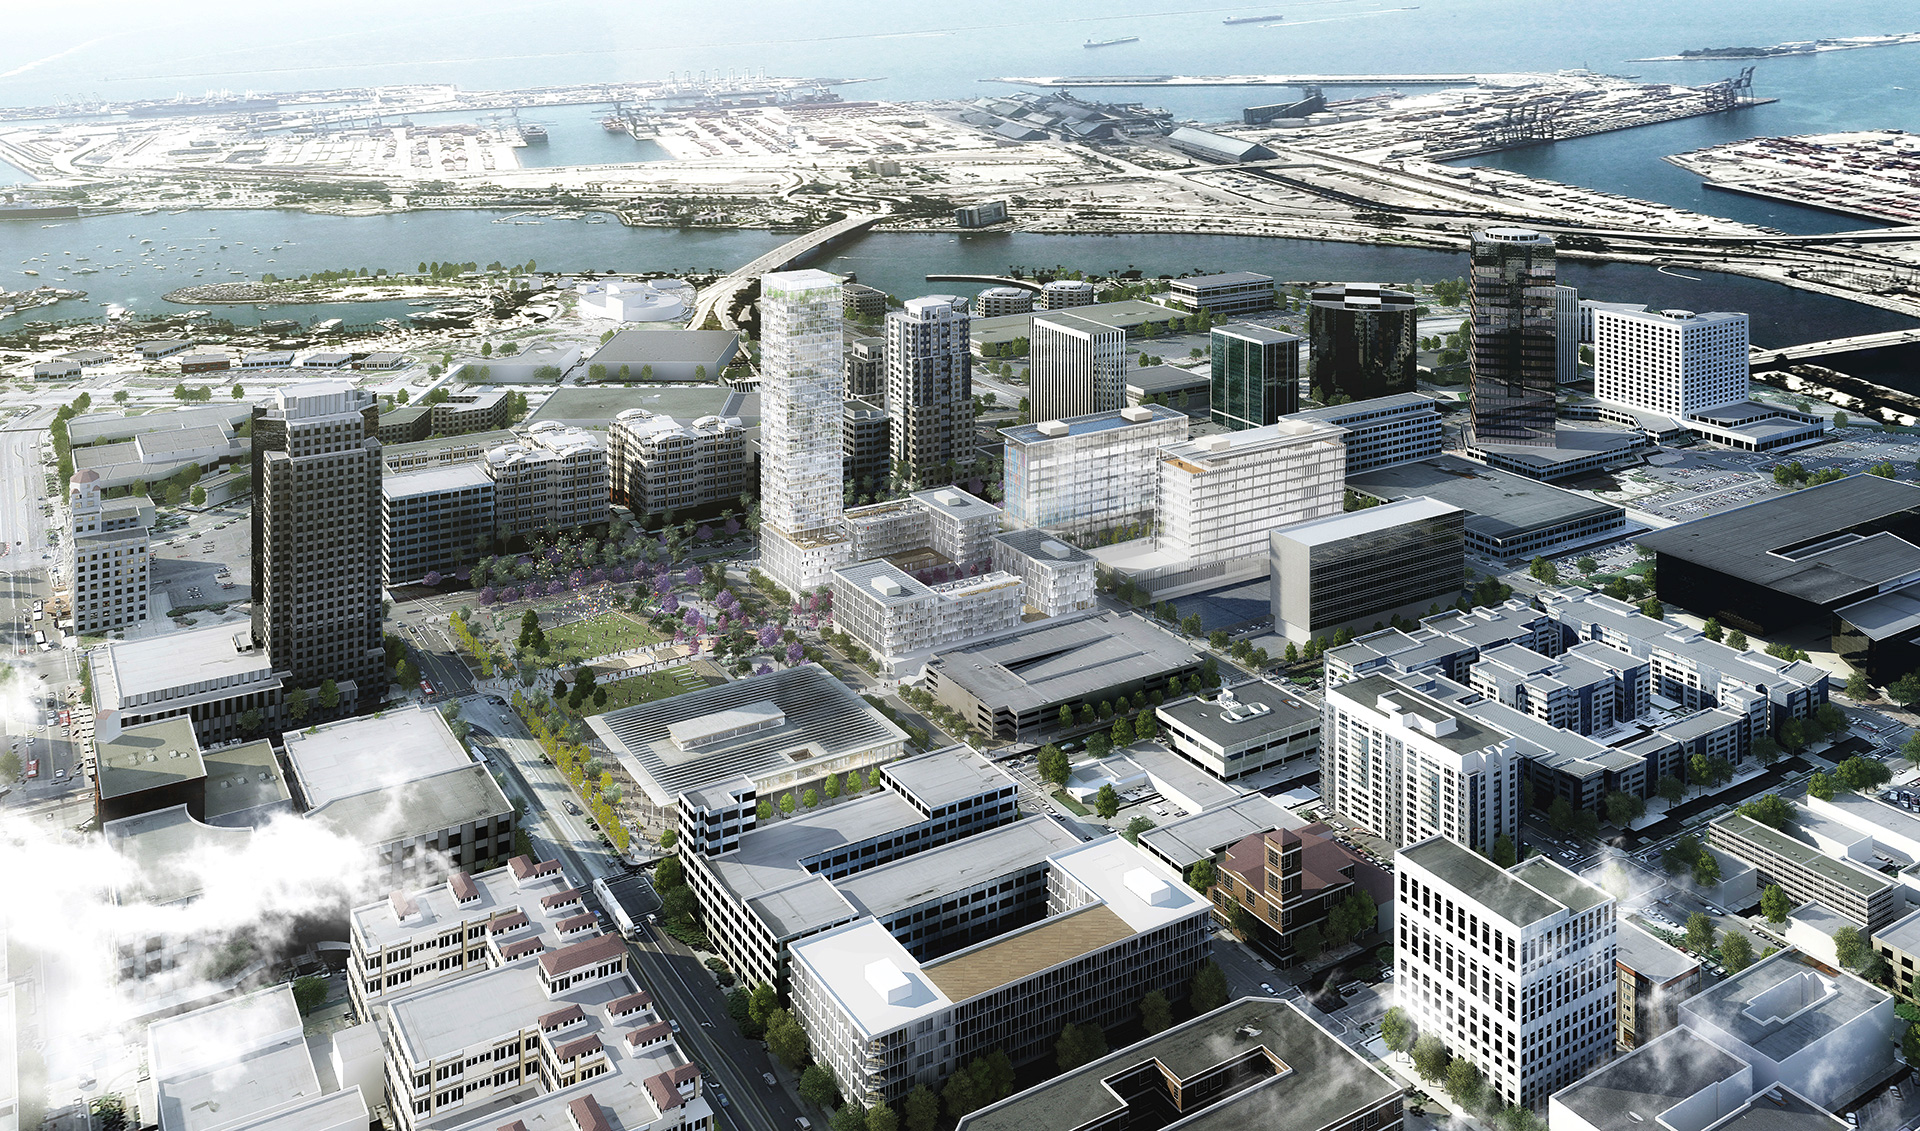 Plenary-Edgemoor Civic Partners has been tapped to develop a new Civic Center through a public-private partnership blending residential units, retail shops, restaurants and a hotel with government facilities in shared space.